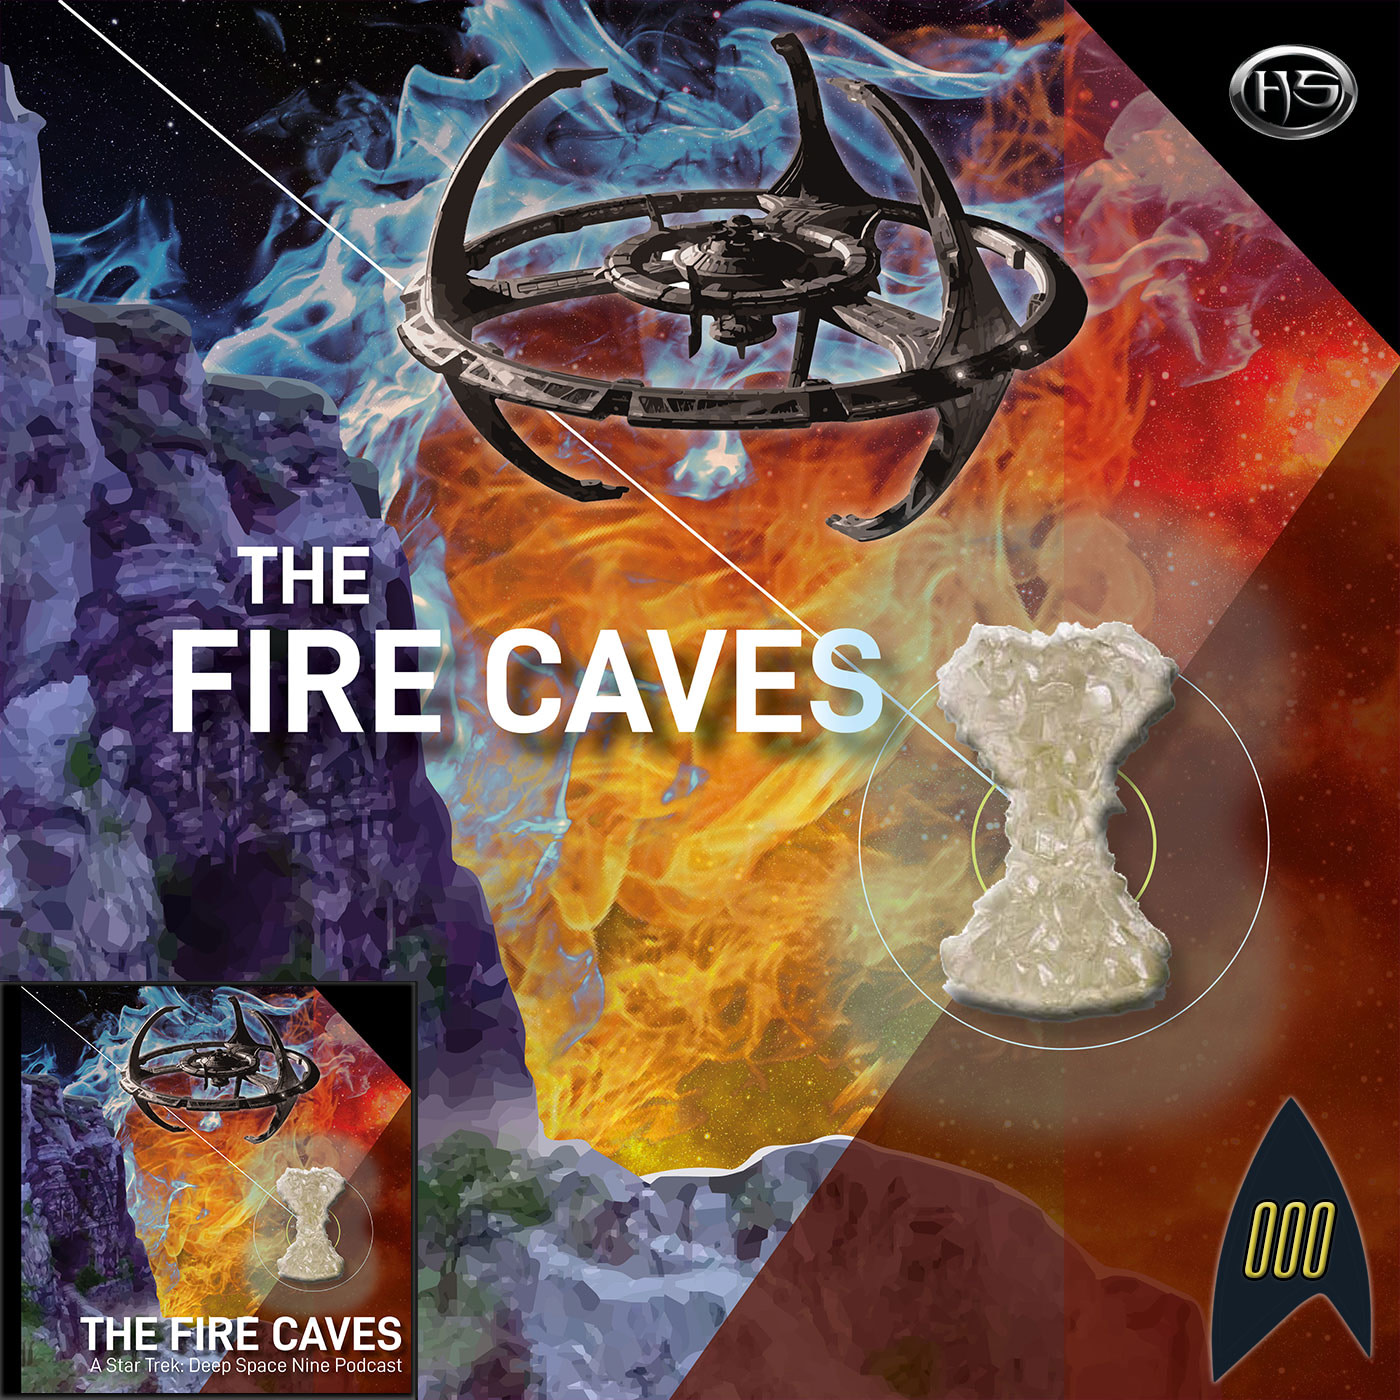 The Fire Caves Episode 0